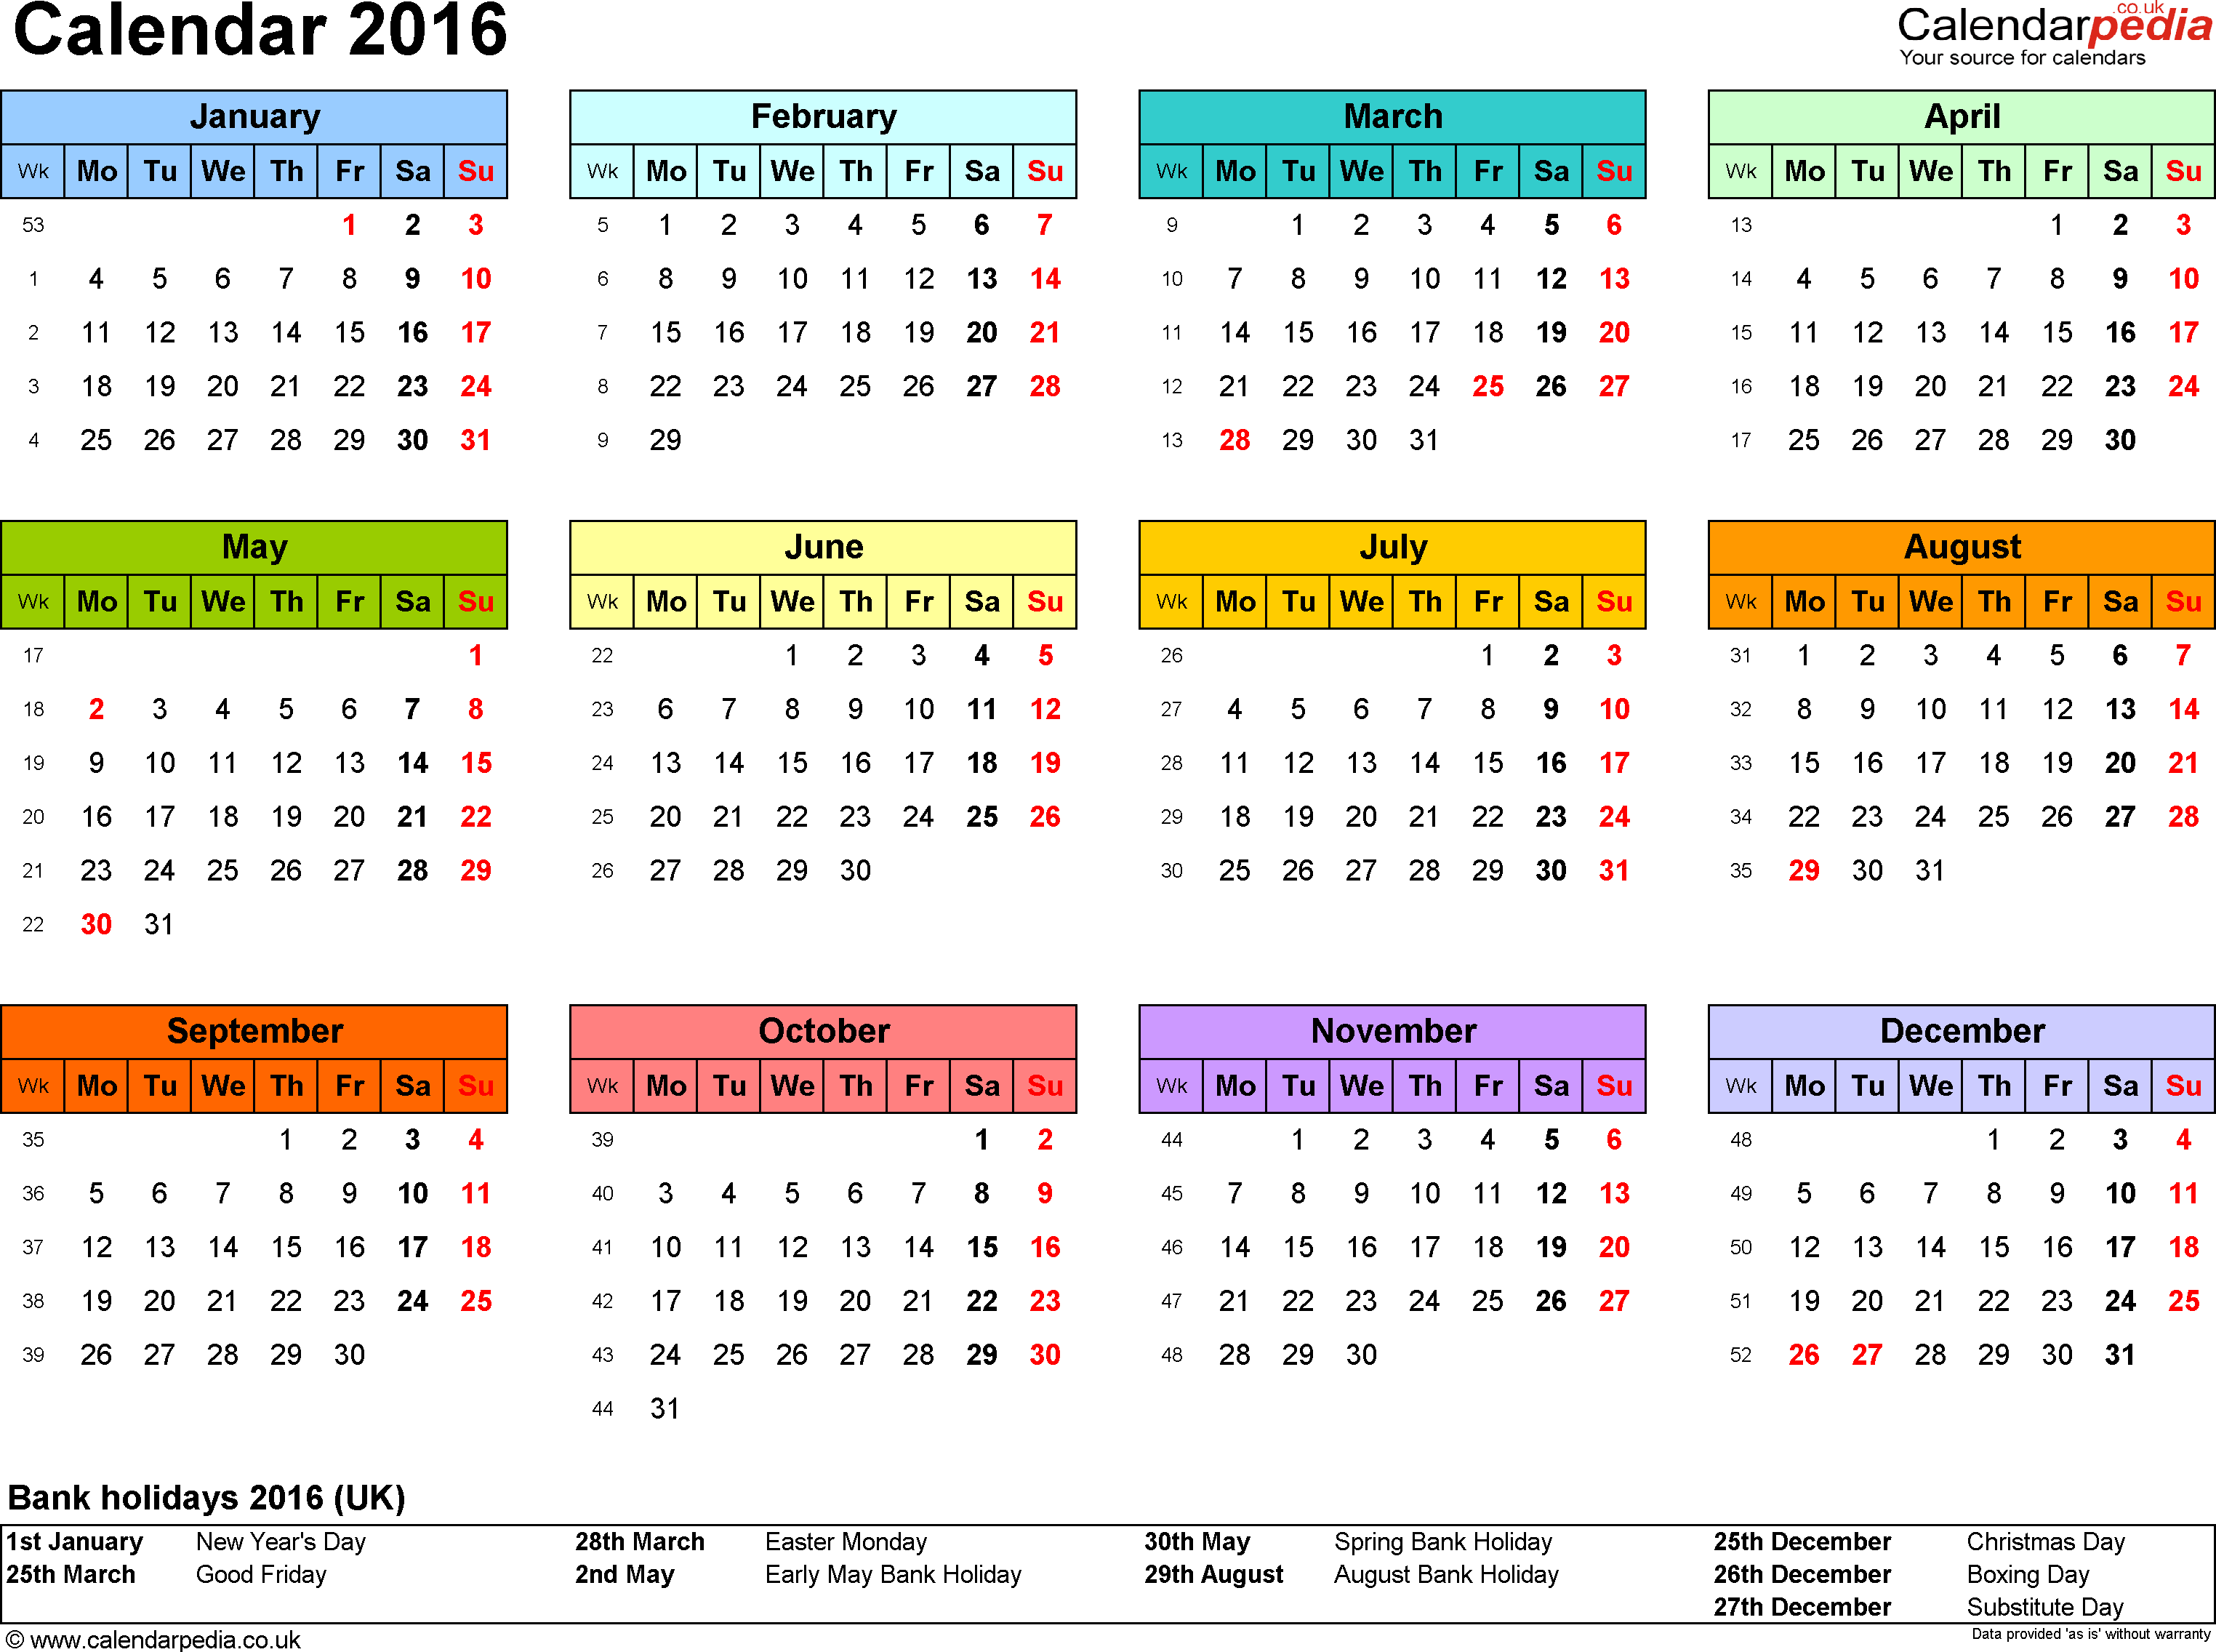 Template 7: Yearly calendar 2016 as Word template, landscape orientation, year overview in colour, 1 page